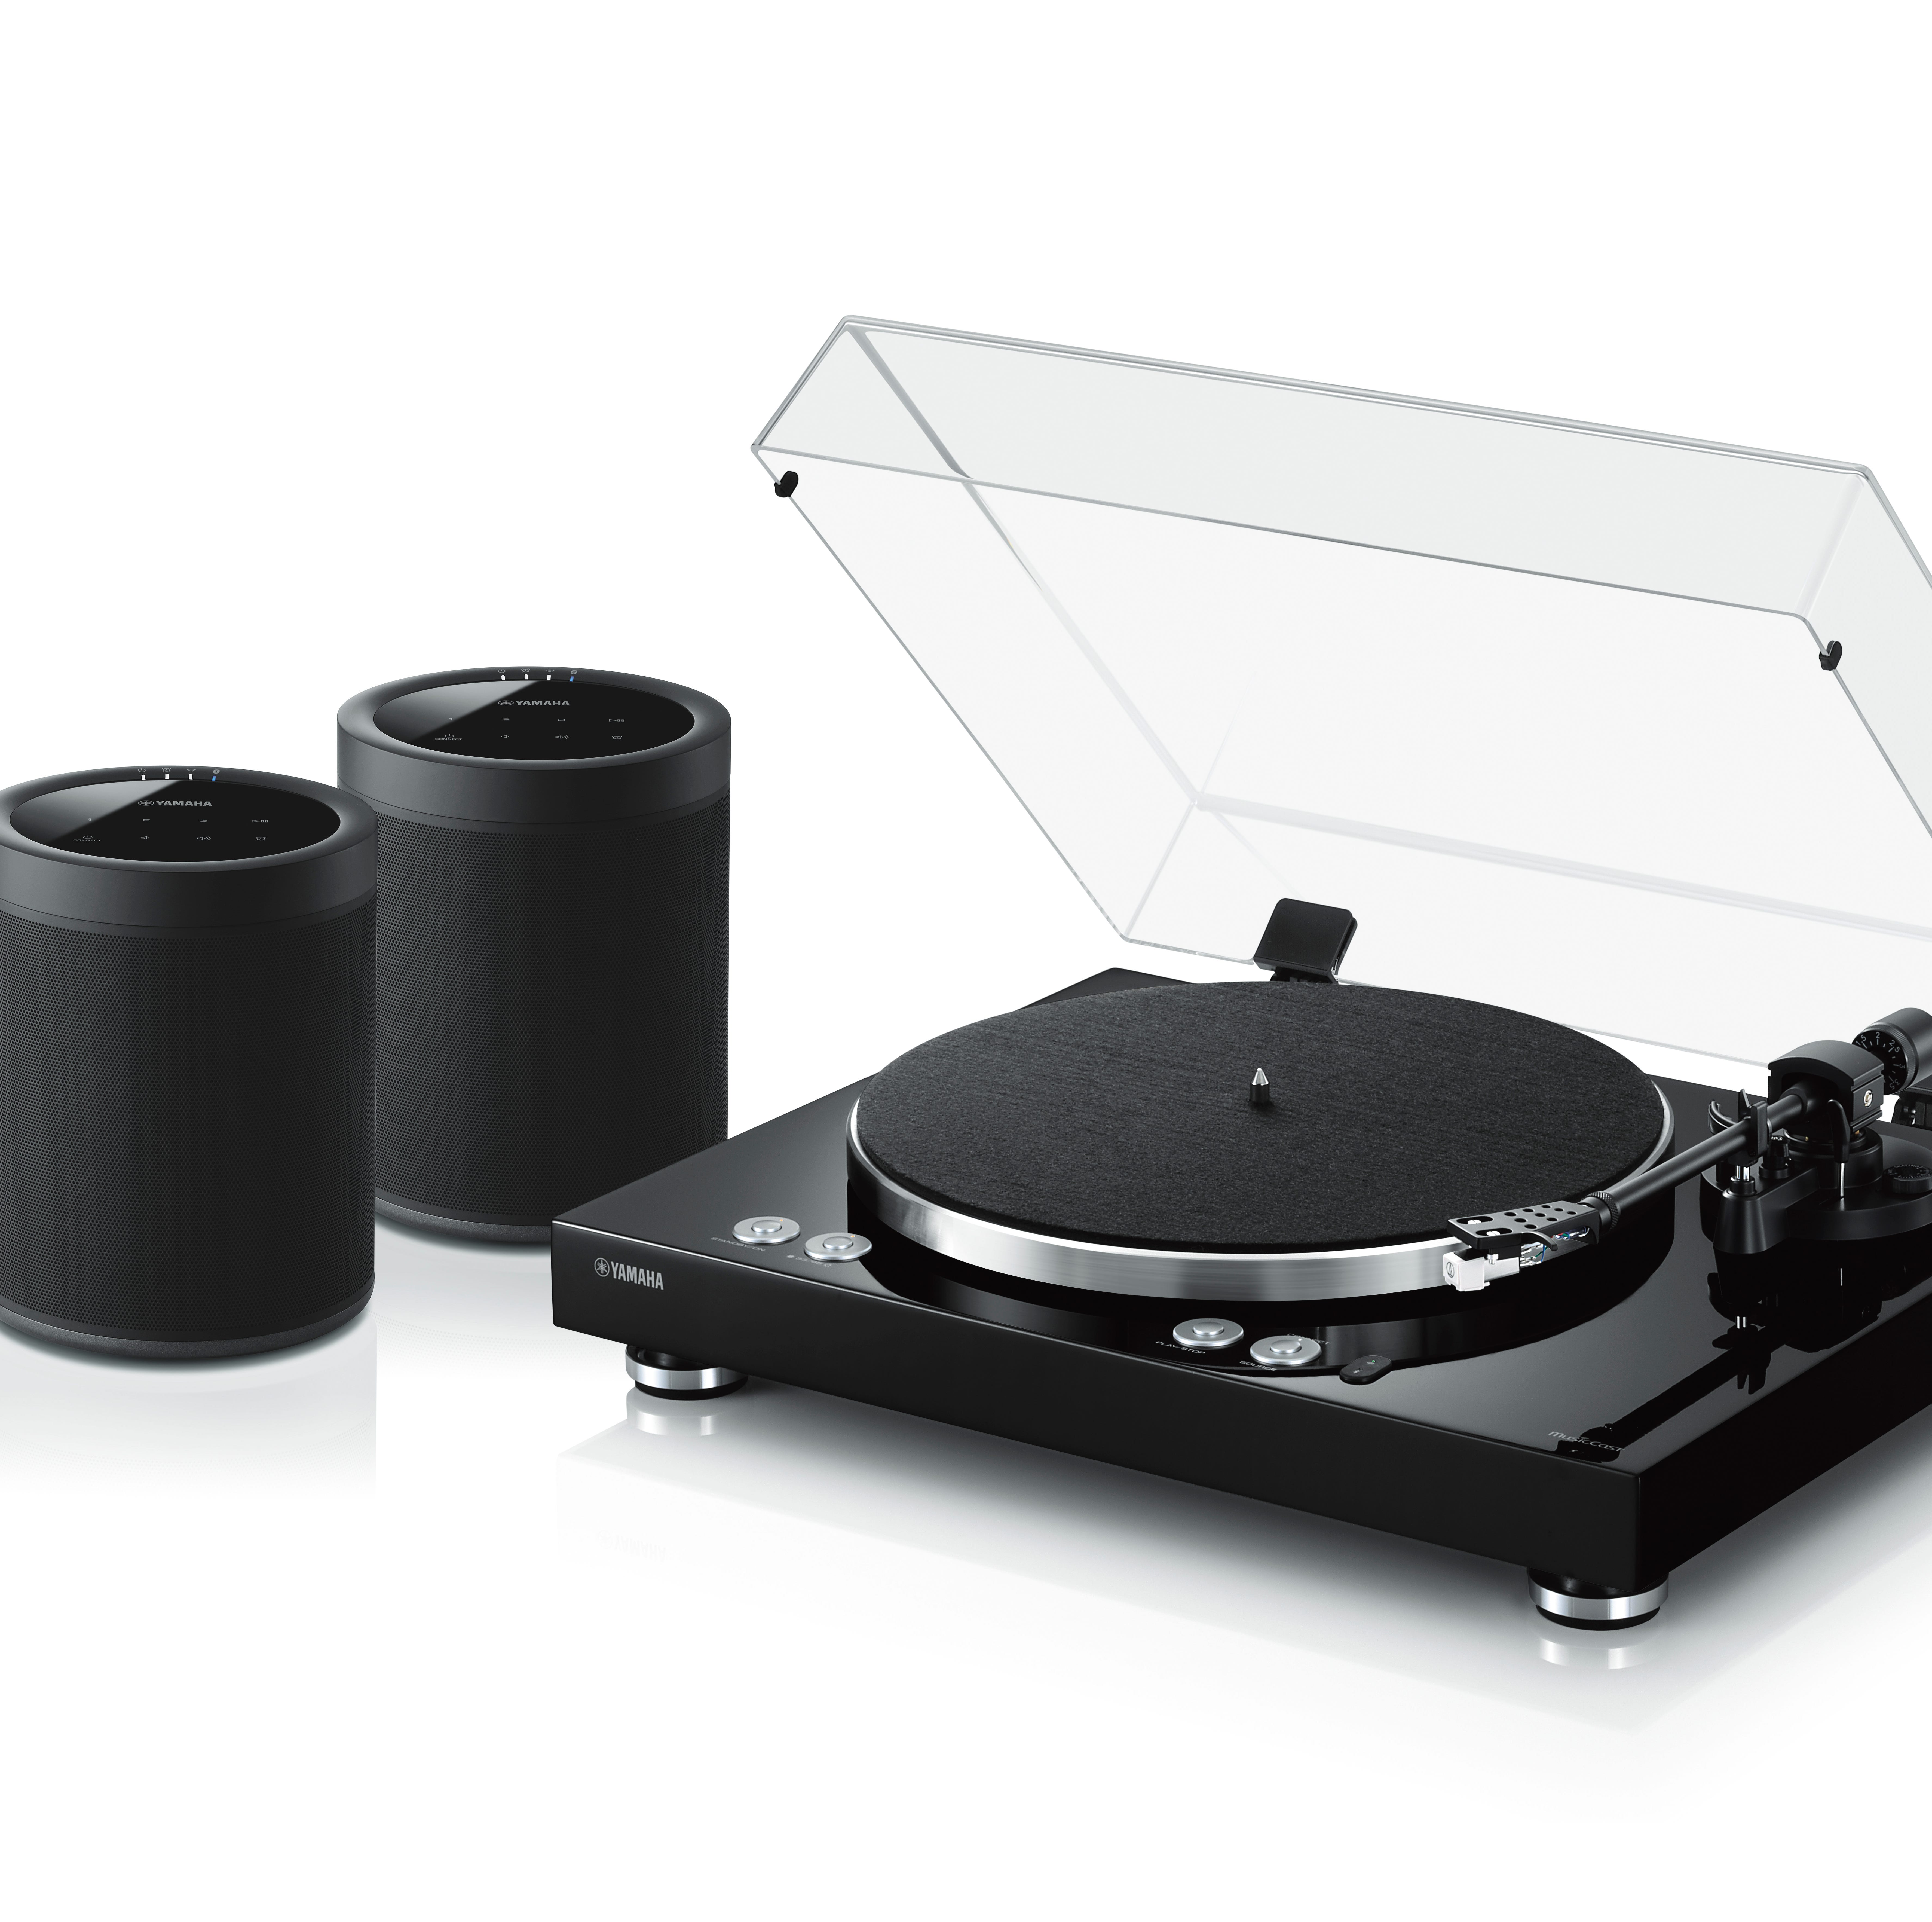 Yamaha's new Wifi turntable sells for $449.